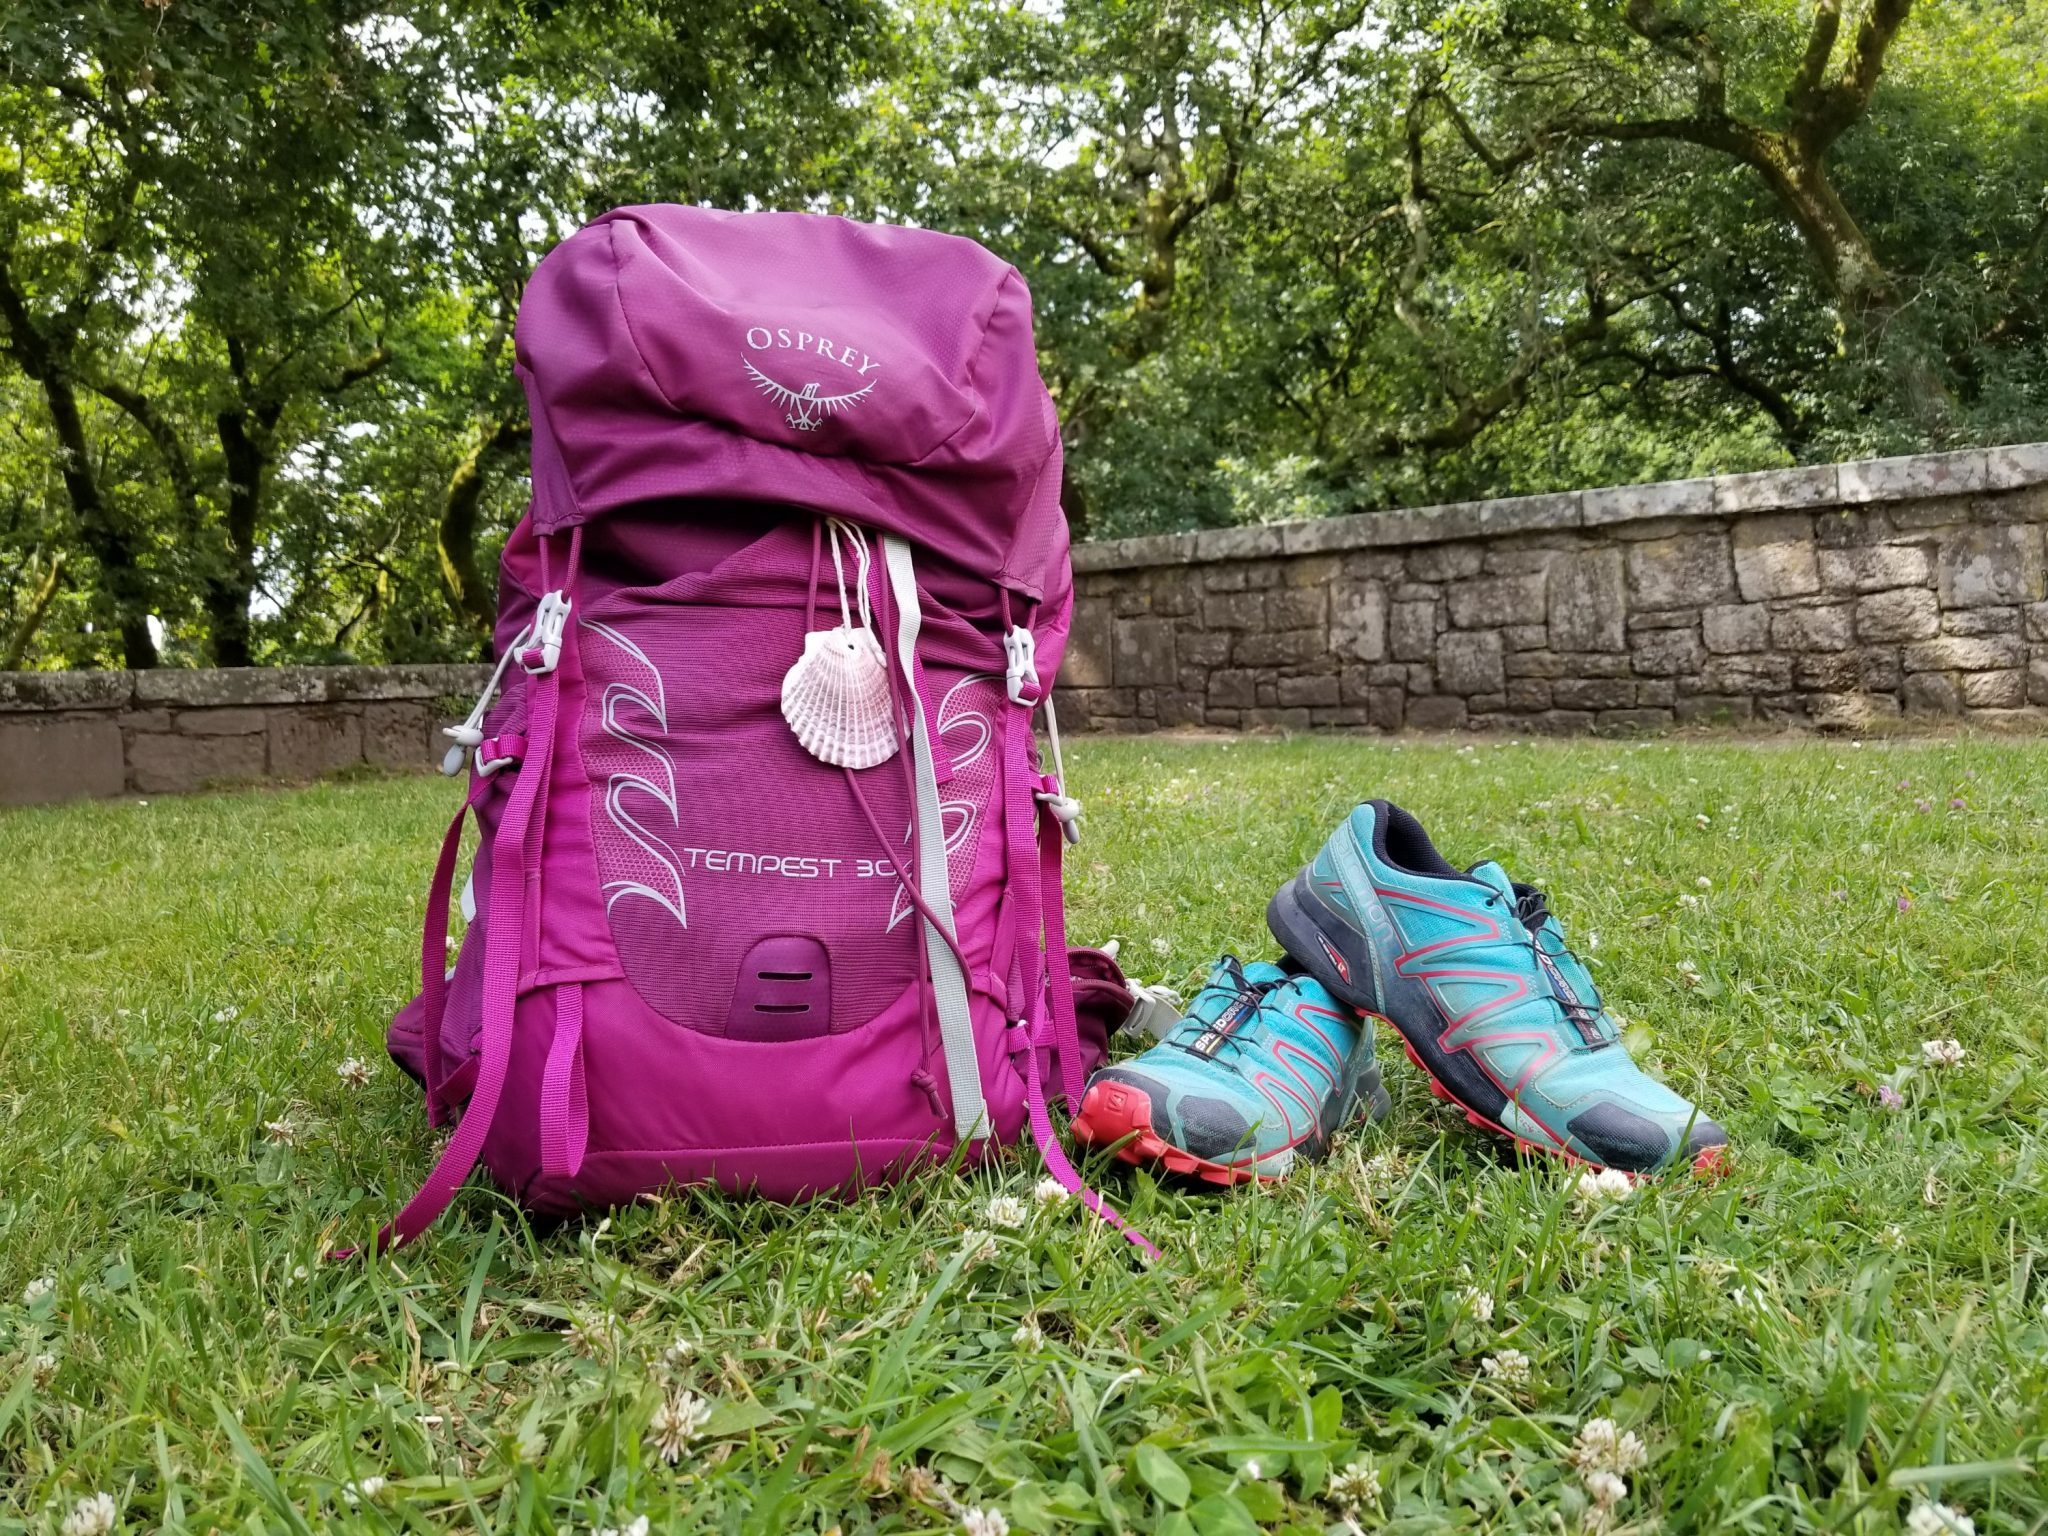 Camino Santiago Packing List My Ultralight Camino Packing List We Belong Outside